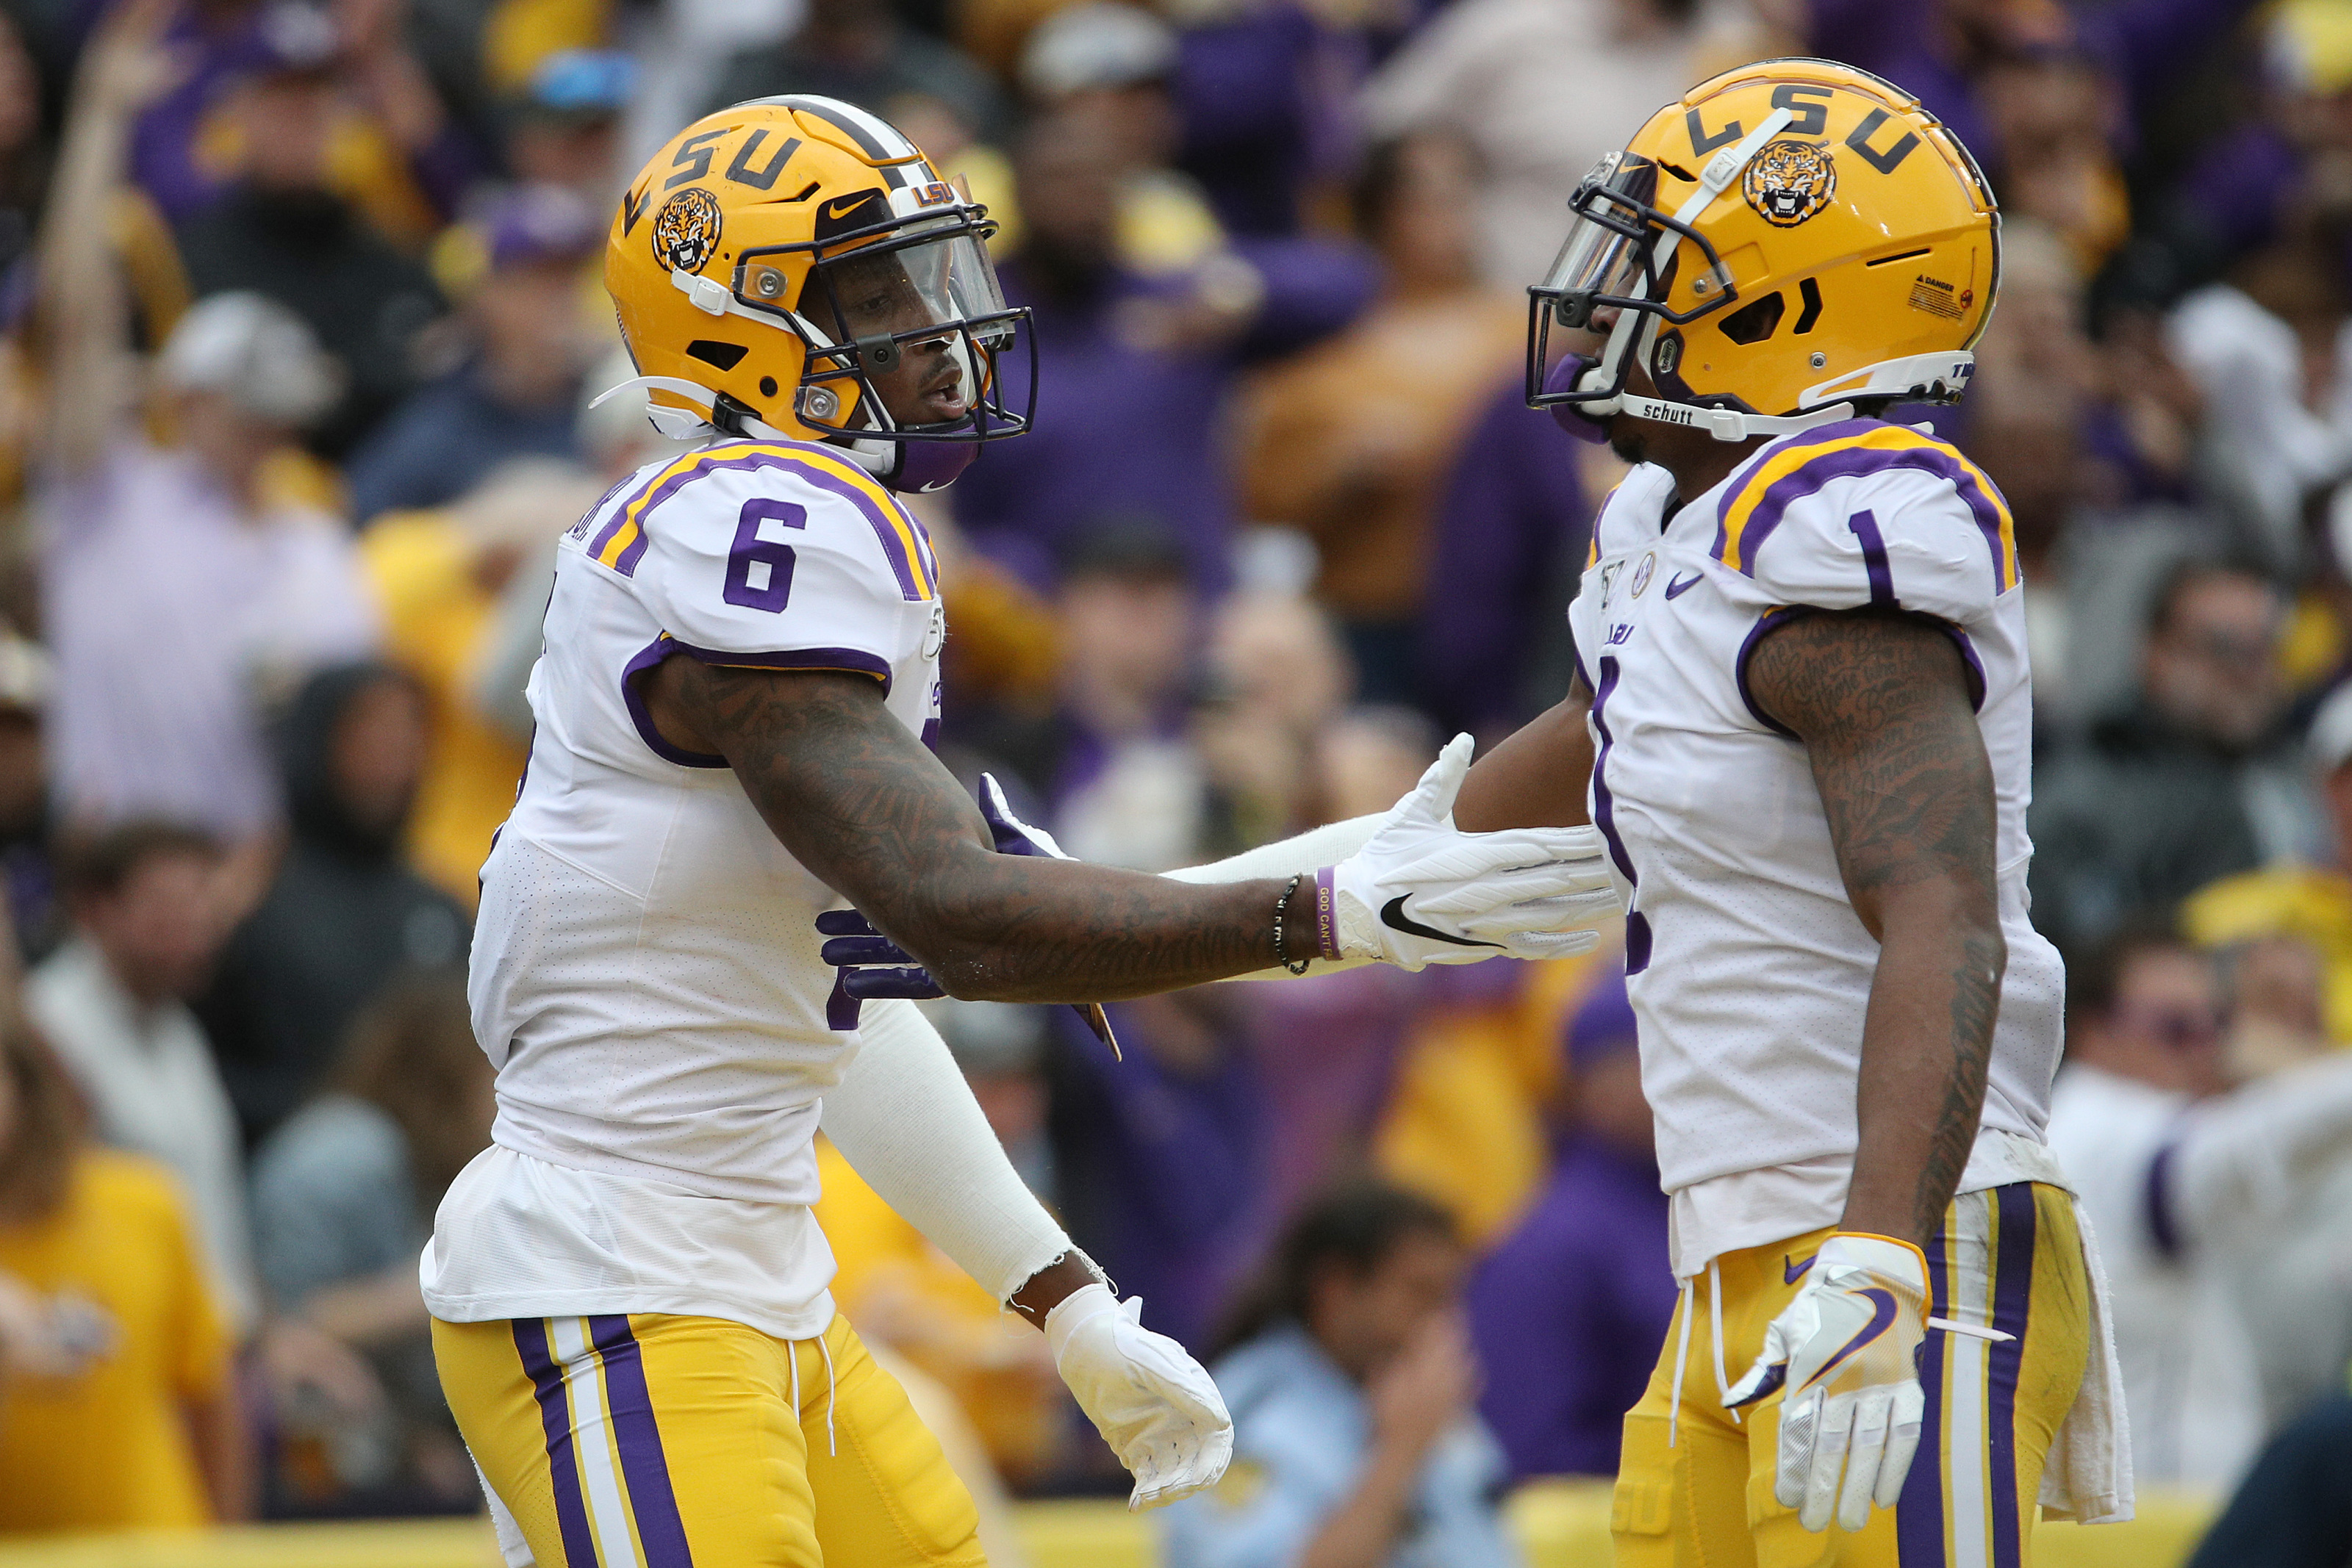 Why LSU football's odds to repeat as national champions are fair